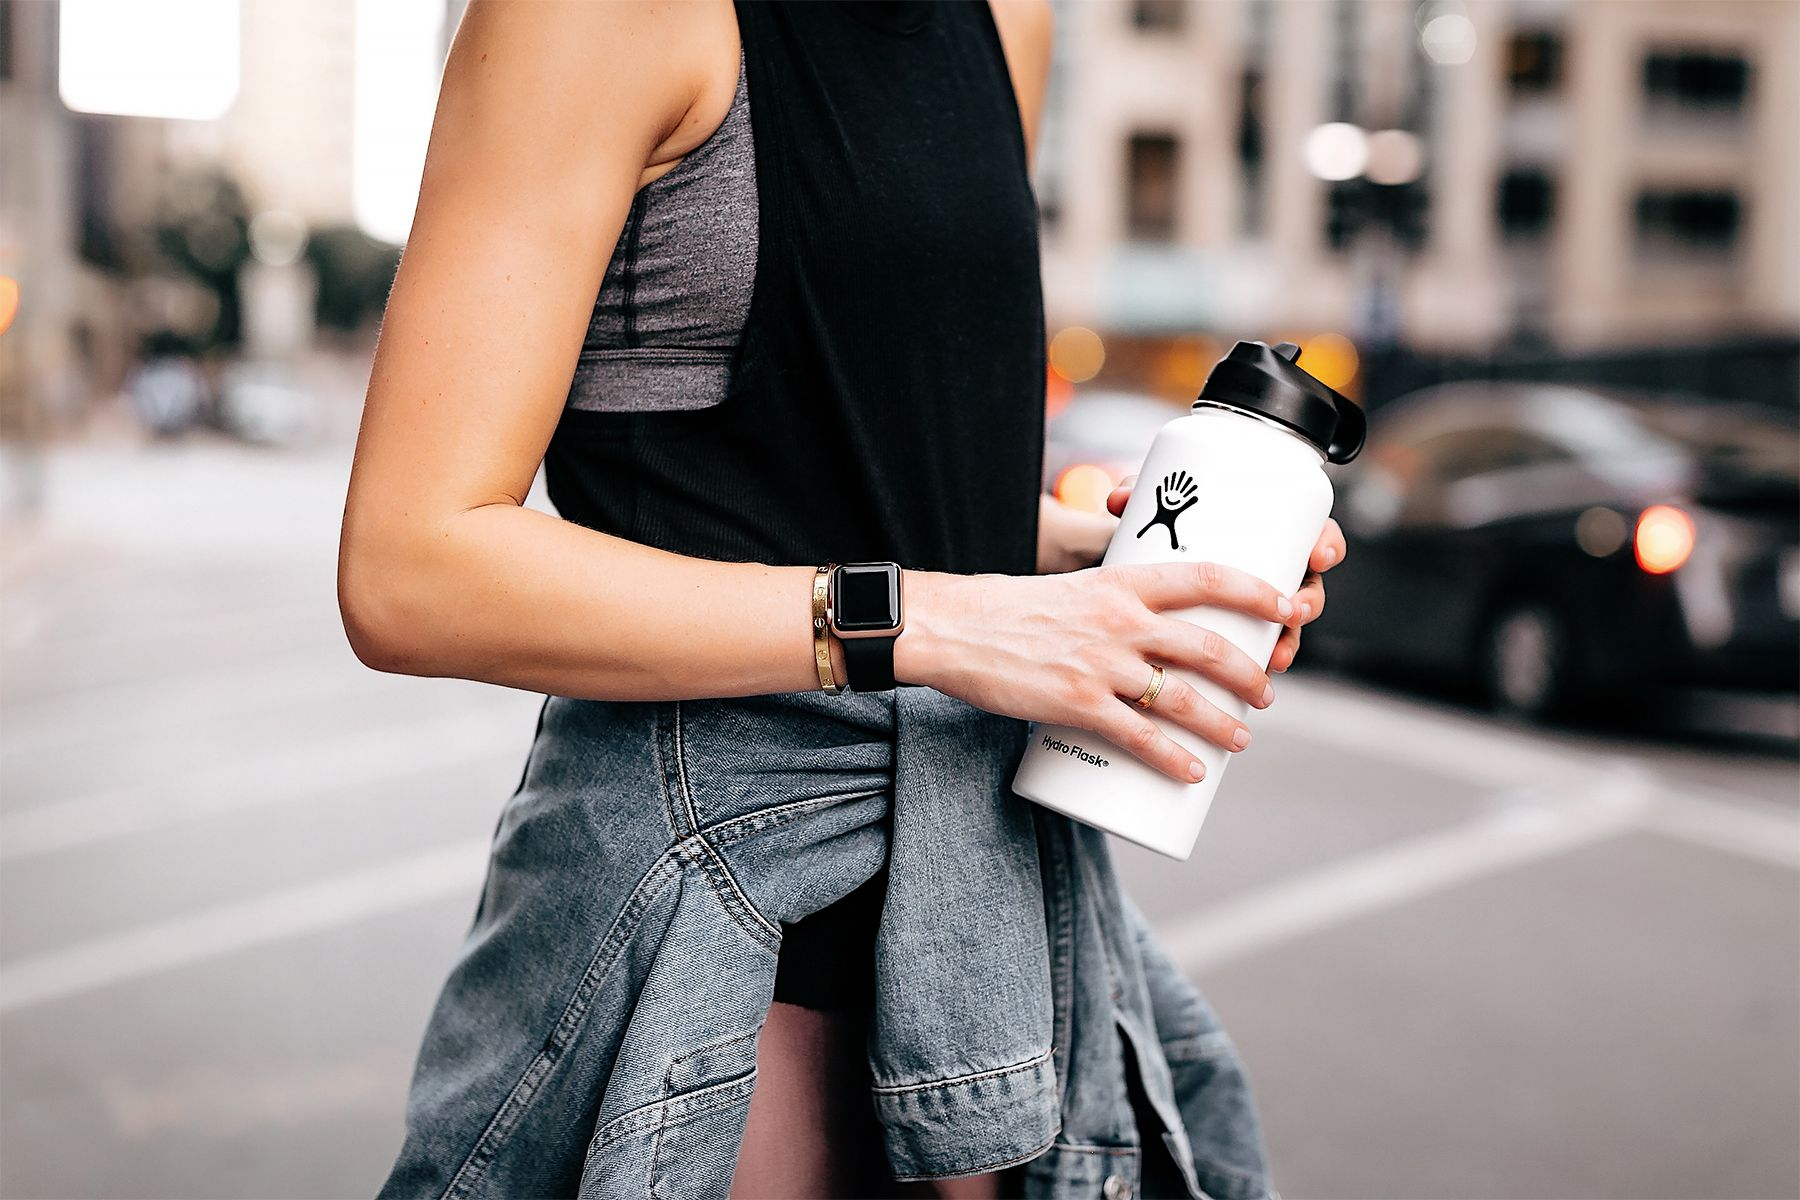 3274b9d71 Woman Wearing Athleisure Activewear Outfit Alo Black Tank Denim Jacket  Hydro Flask White Water Bottle Apple Watch Fashion Jackson San Diego Fashion  Blogger ...